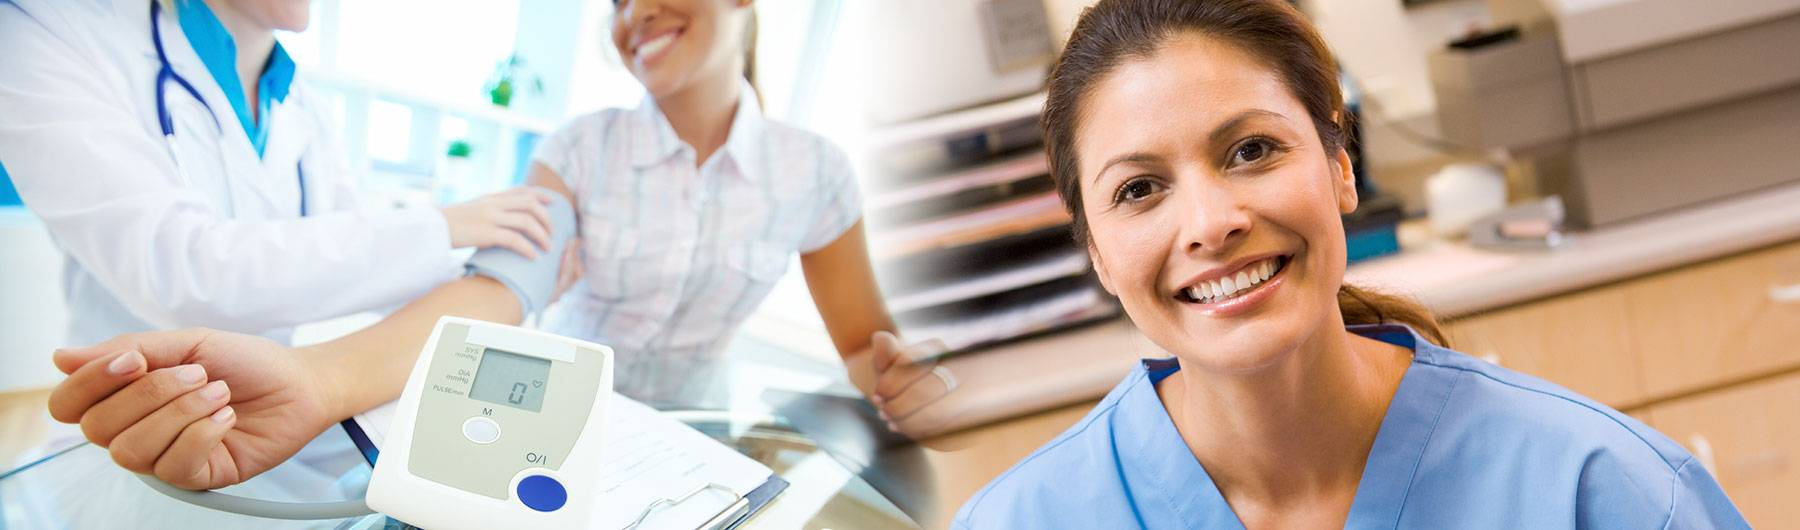 Medical Assistant Certification Training School In Ga Fl